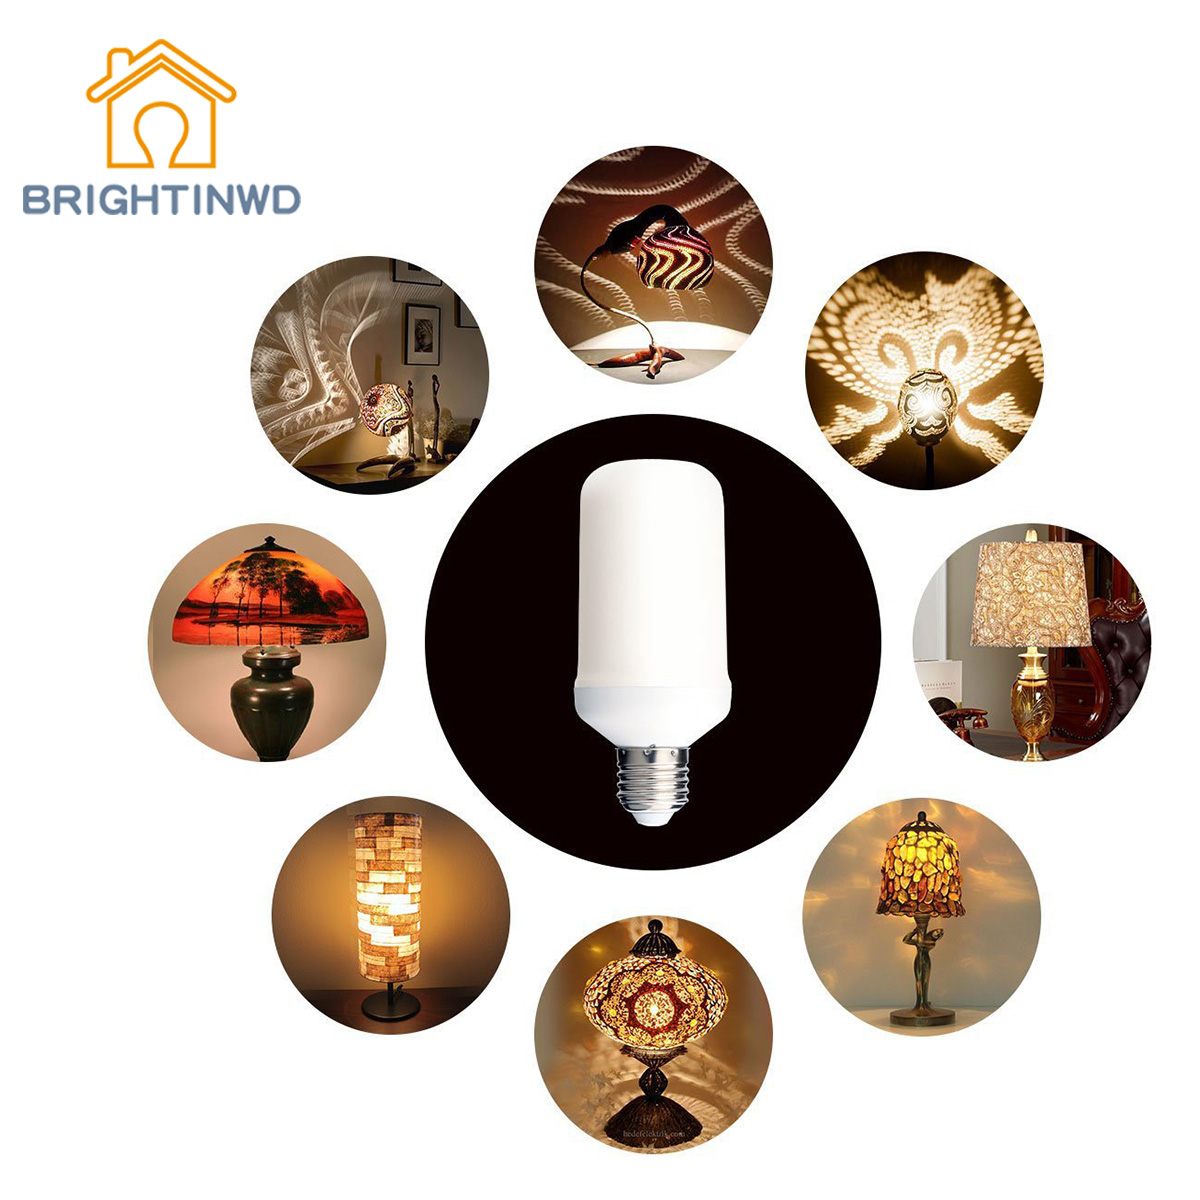 BRIGHTINWD Flame Light LED Torch Light Bulb 99SMD Simulation Flame Candle Light E27 Festive Decorate Atmosphere Flare Light